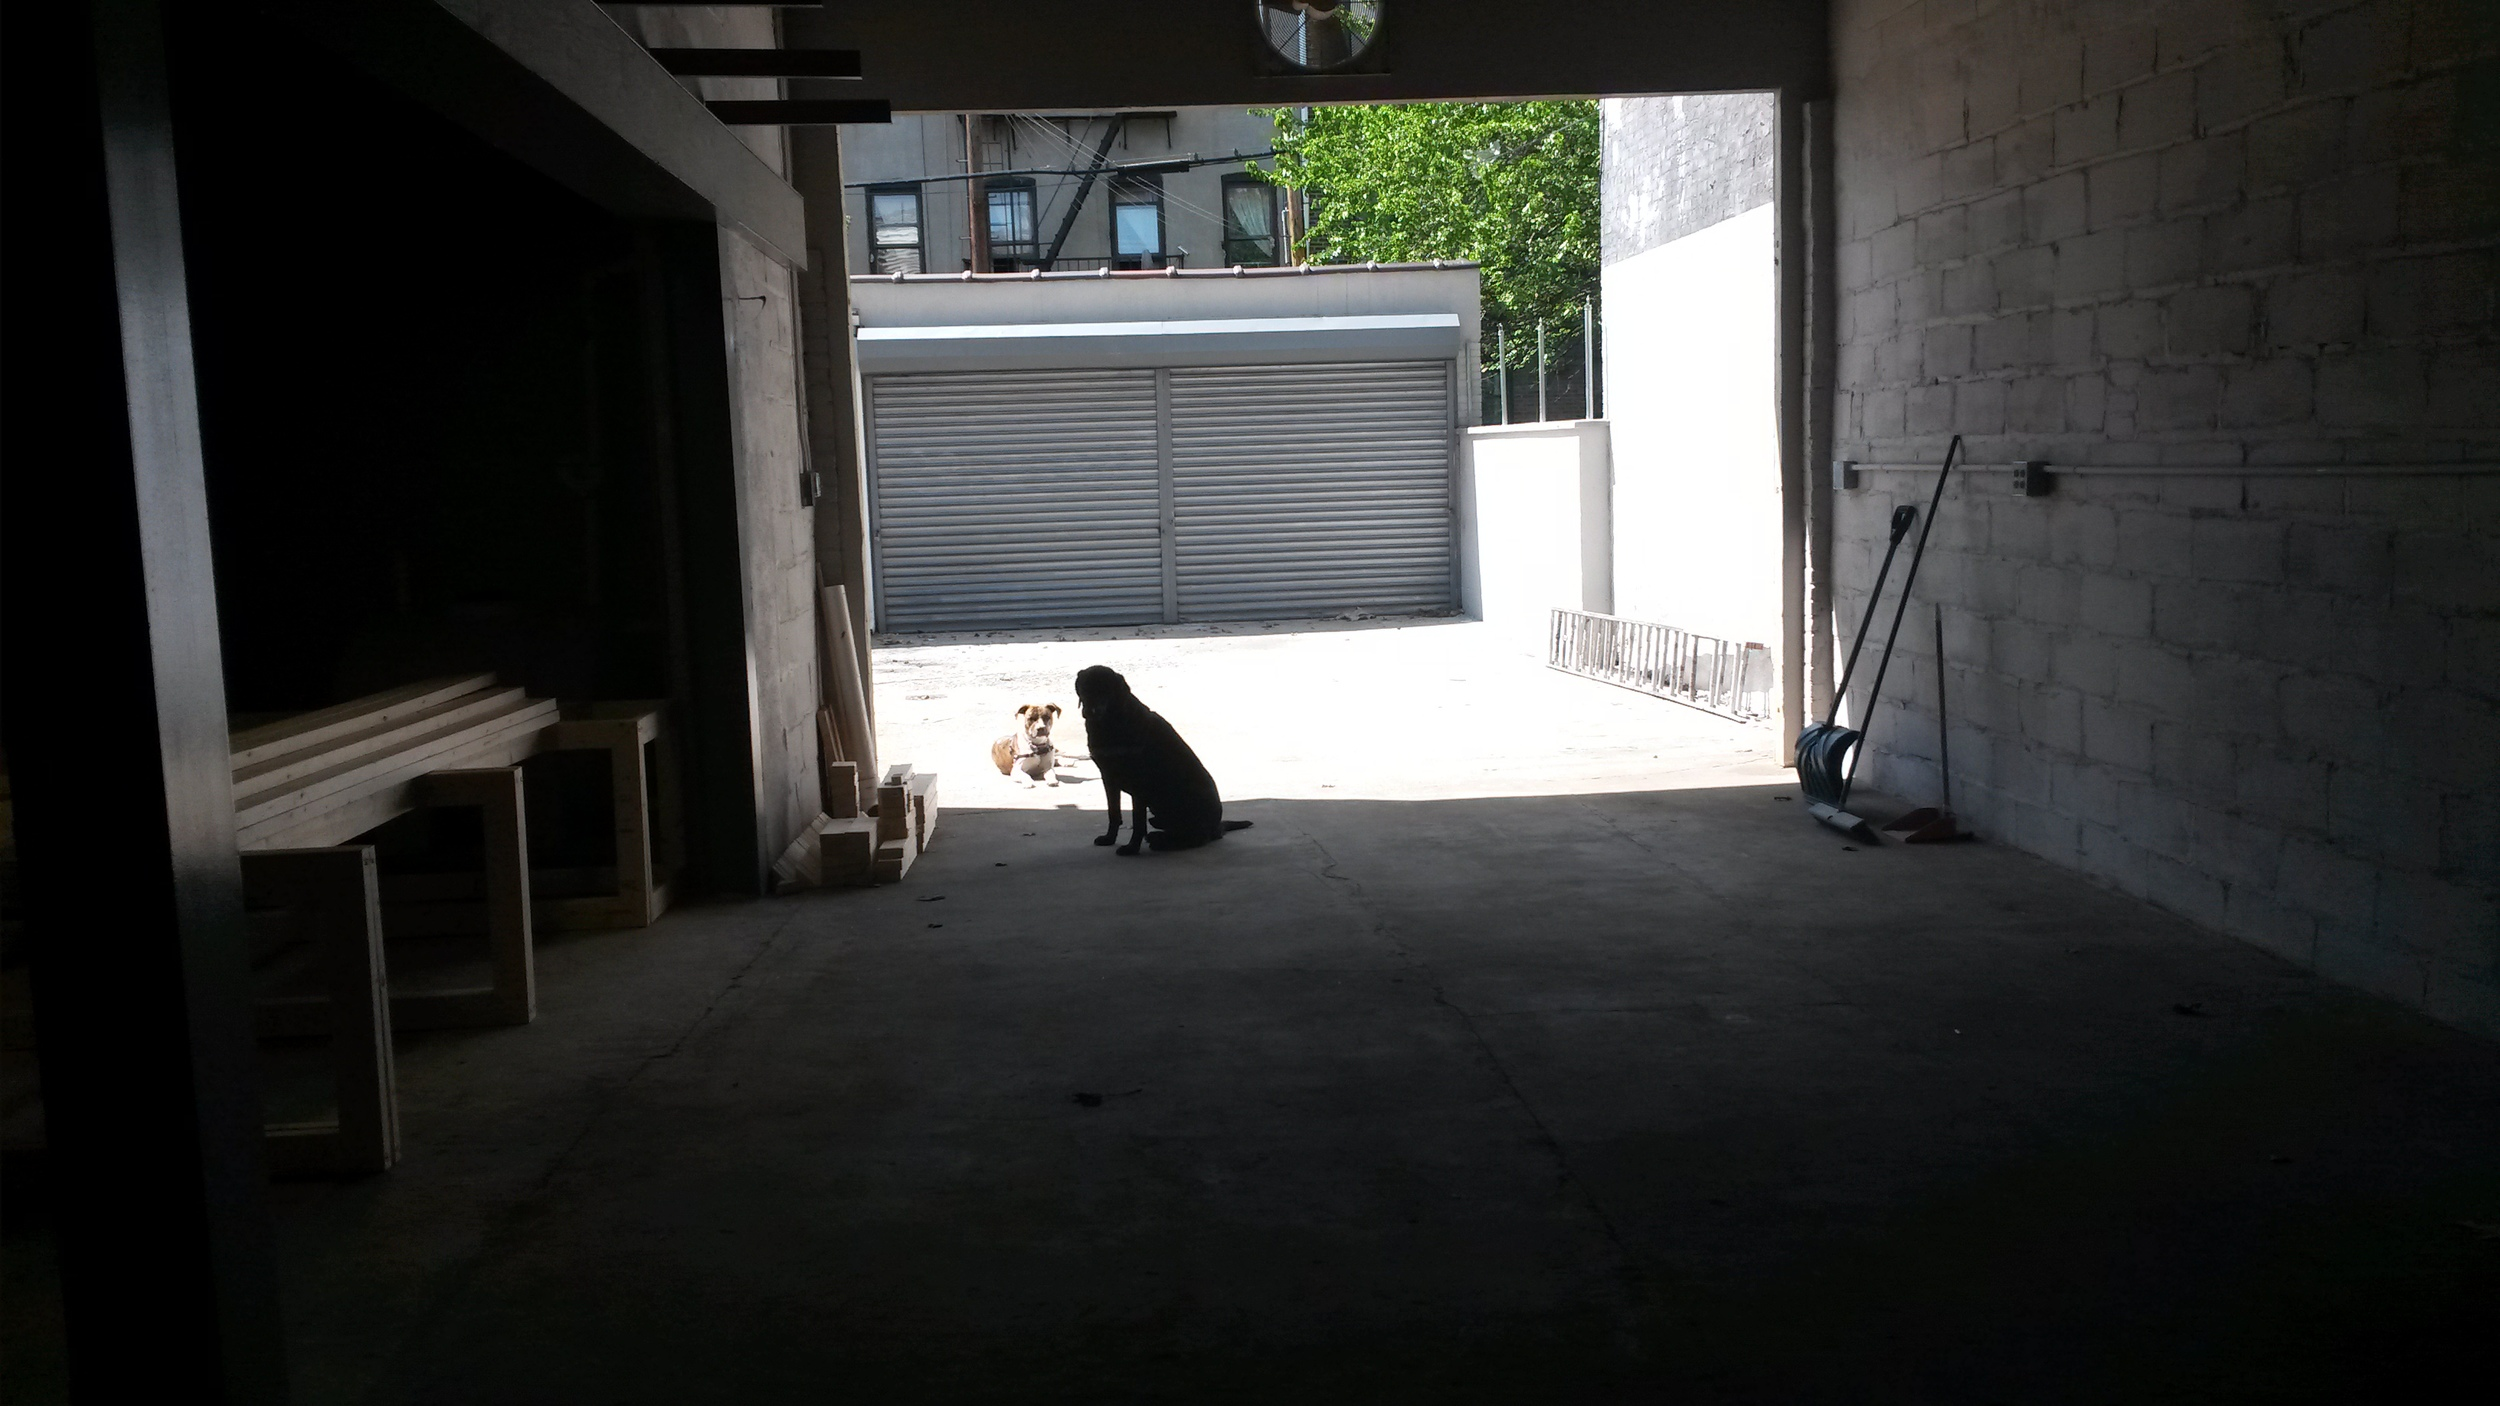 Lola and Camper survey the raw space